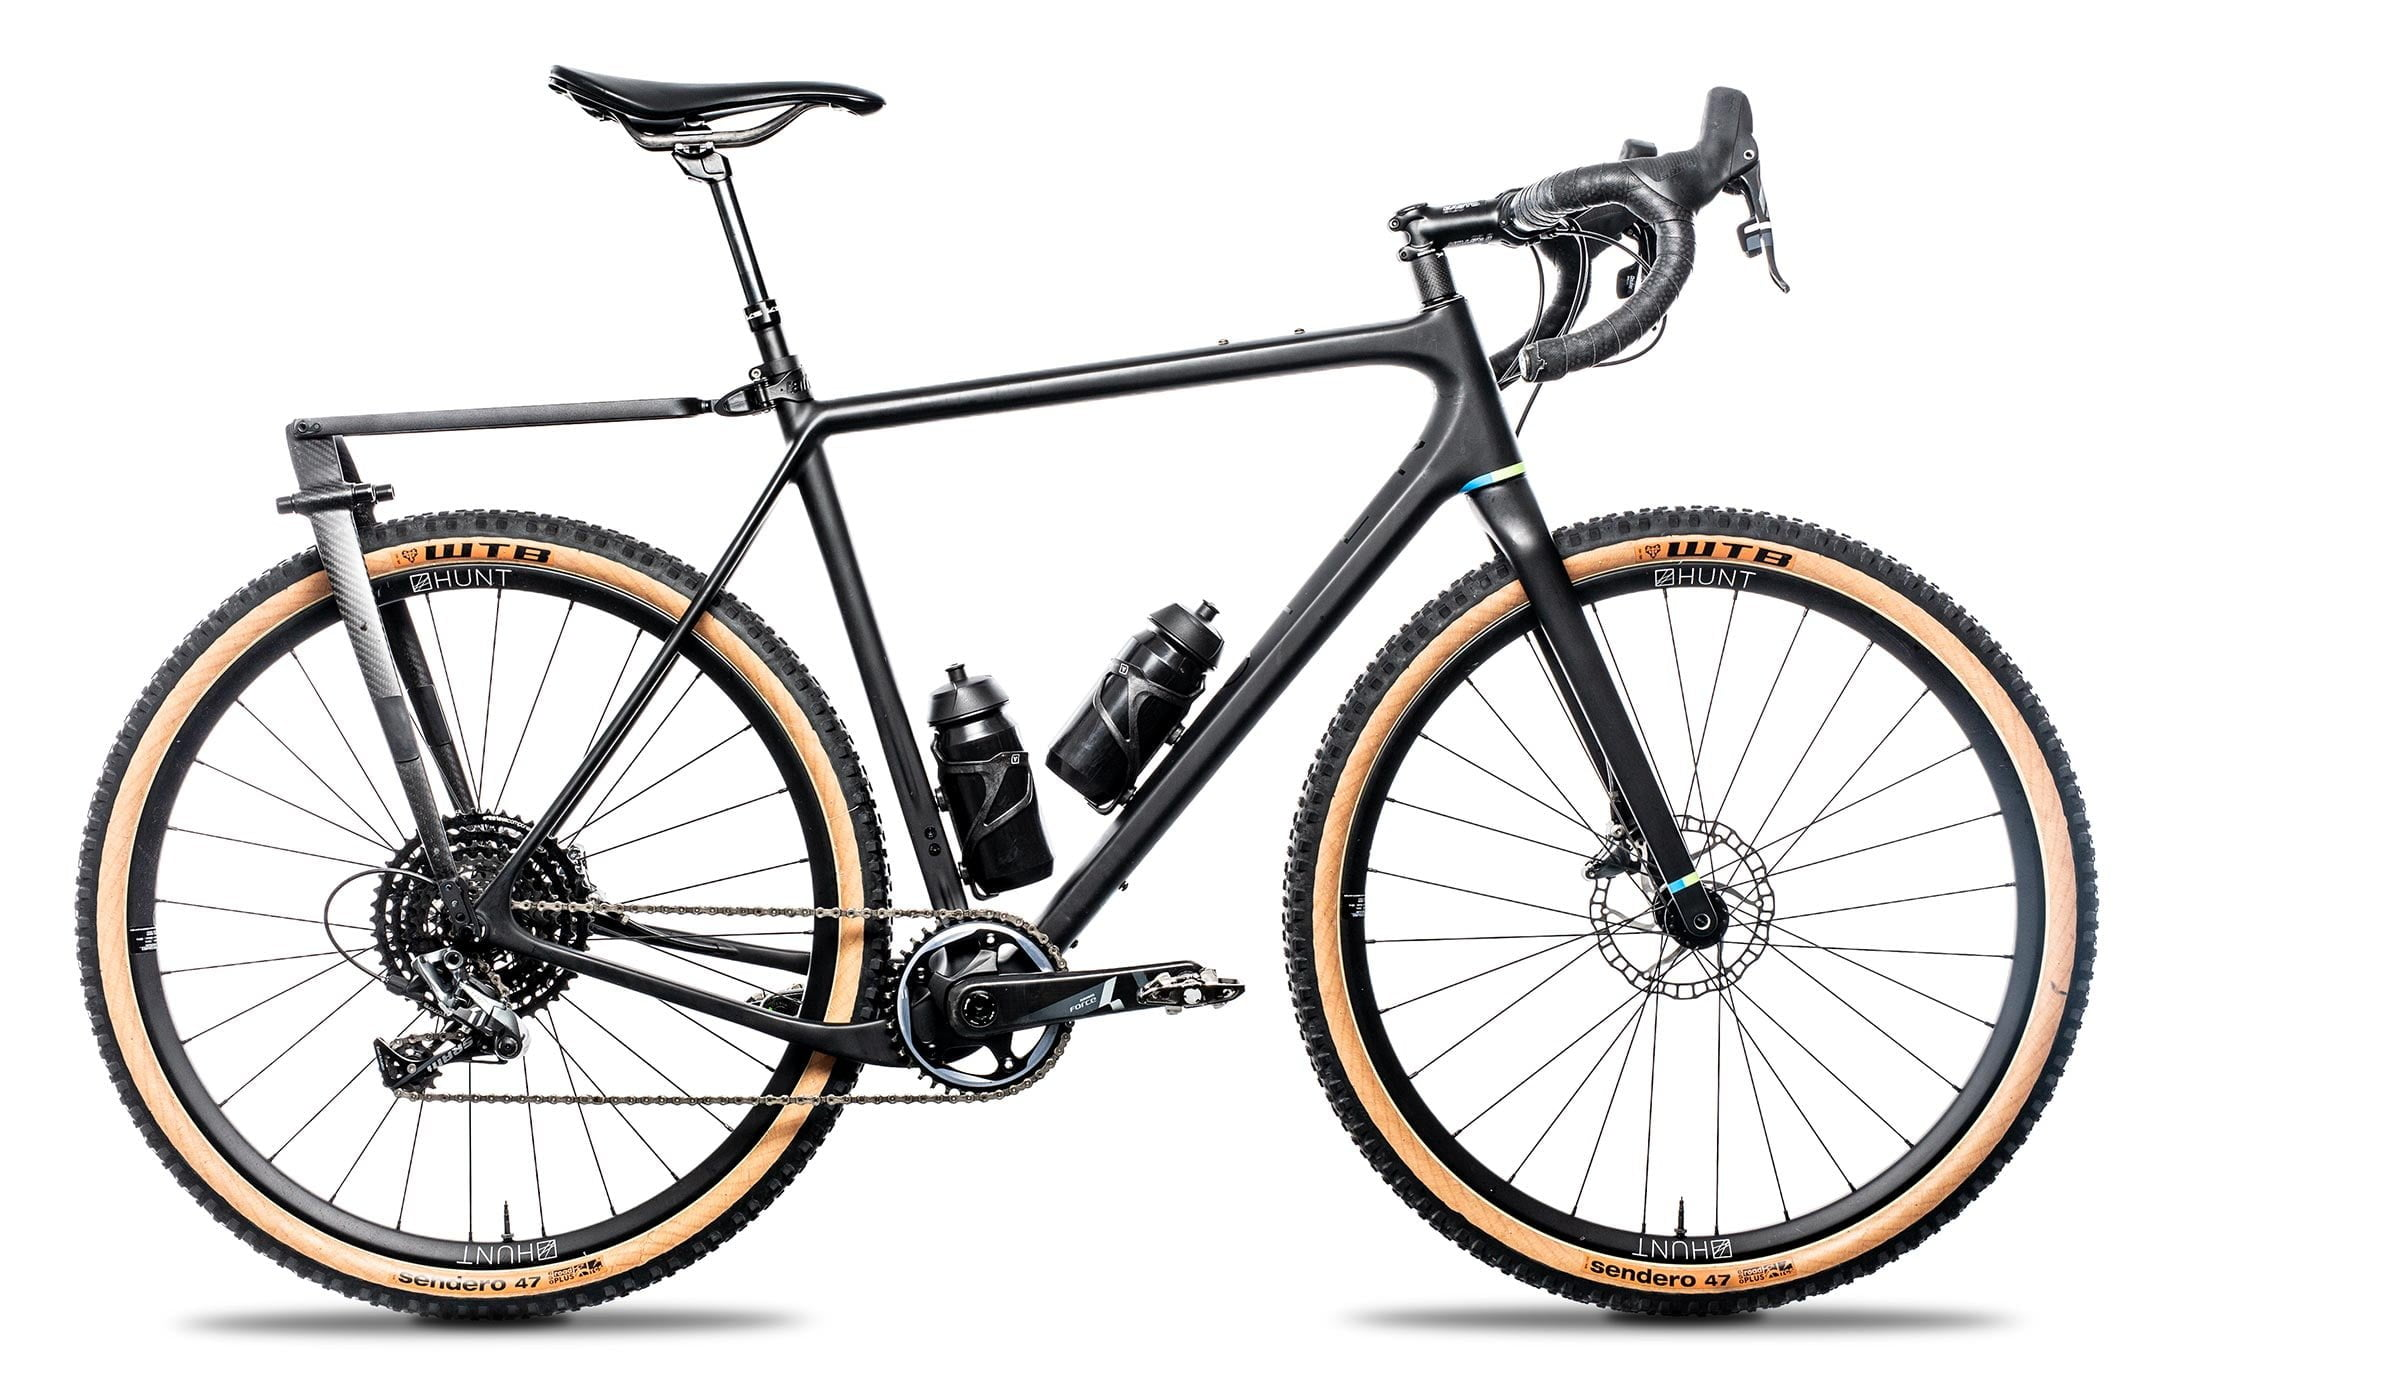 syntace X-12 12mm 142mm Cannondale BMC Cube Canyon Specialized Ghost Norco Opus